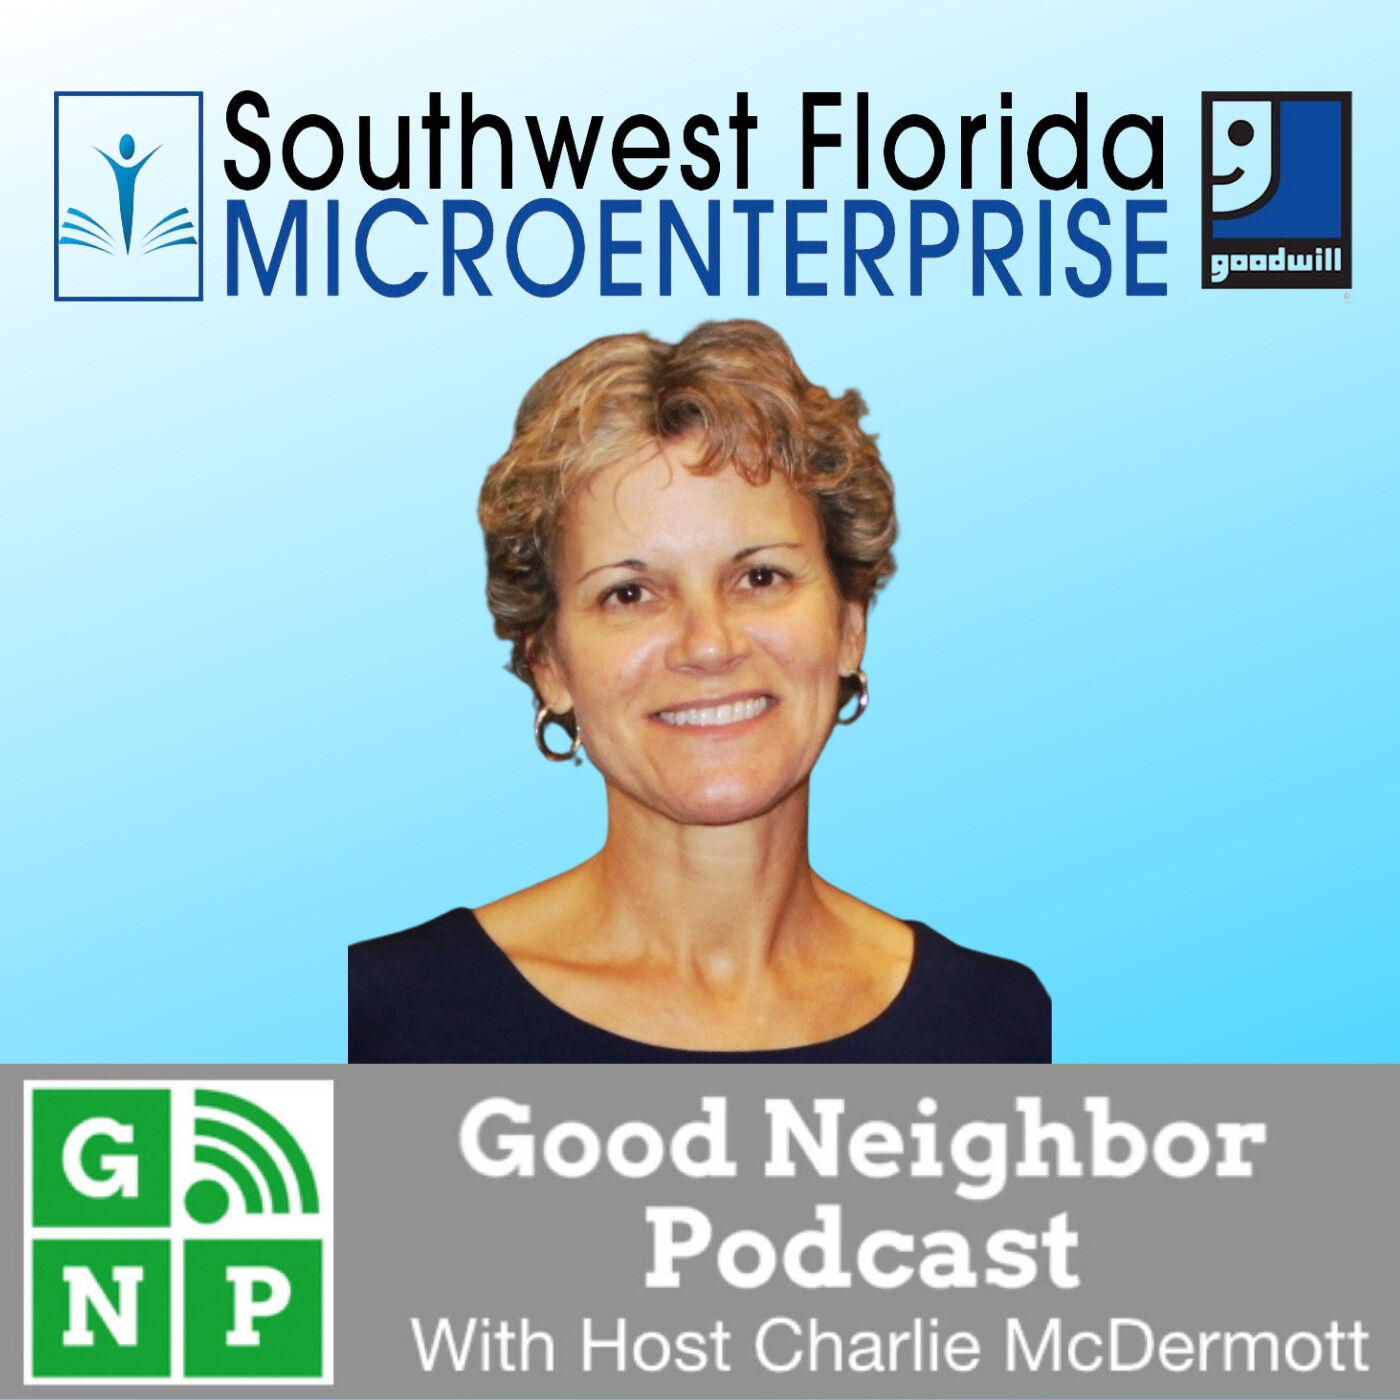 EP #527: Goodwill MicroEnterprise Institute with Dorothy Browning